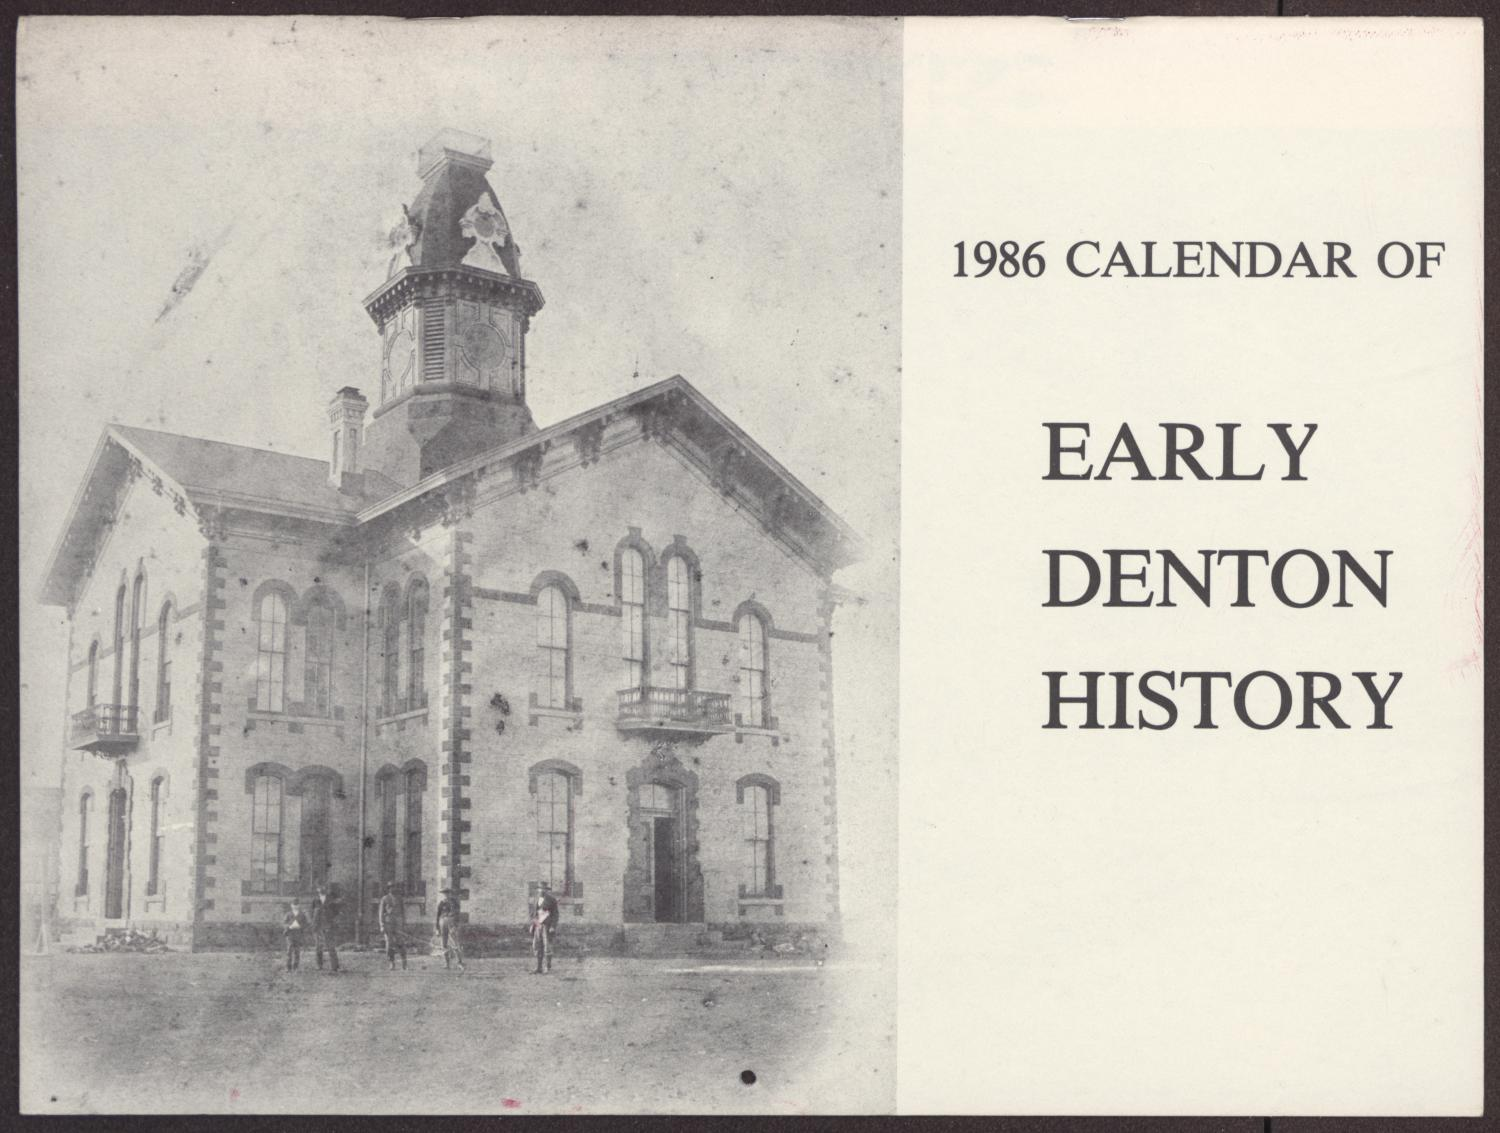 1986 Calendar of Early Denton History                                                                                                      [Sequence #]: 1 of 15